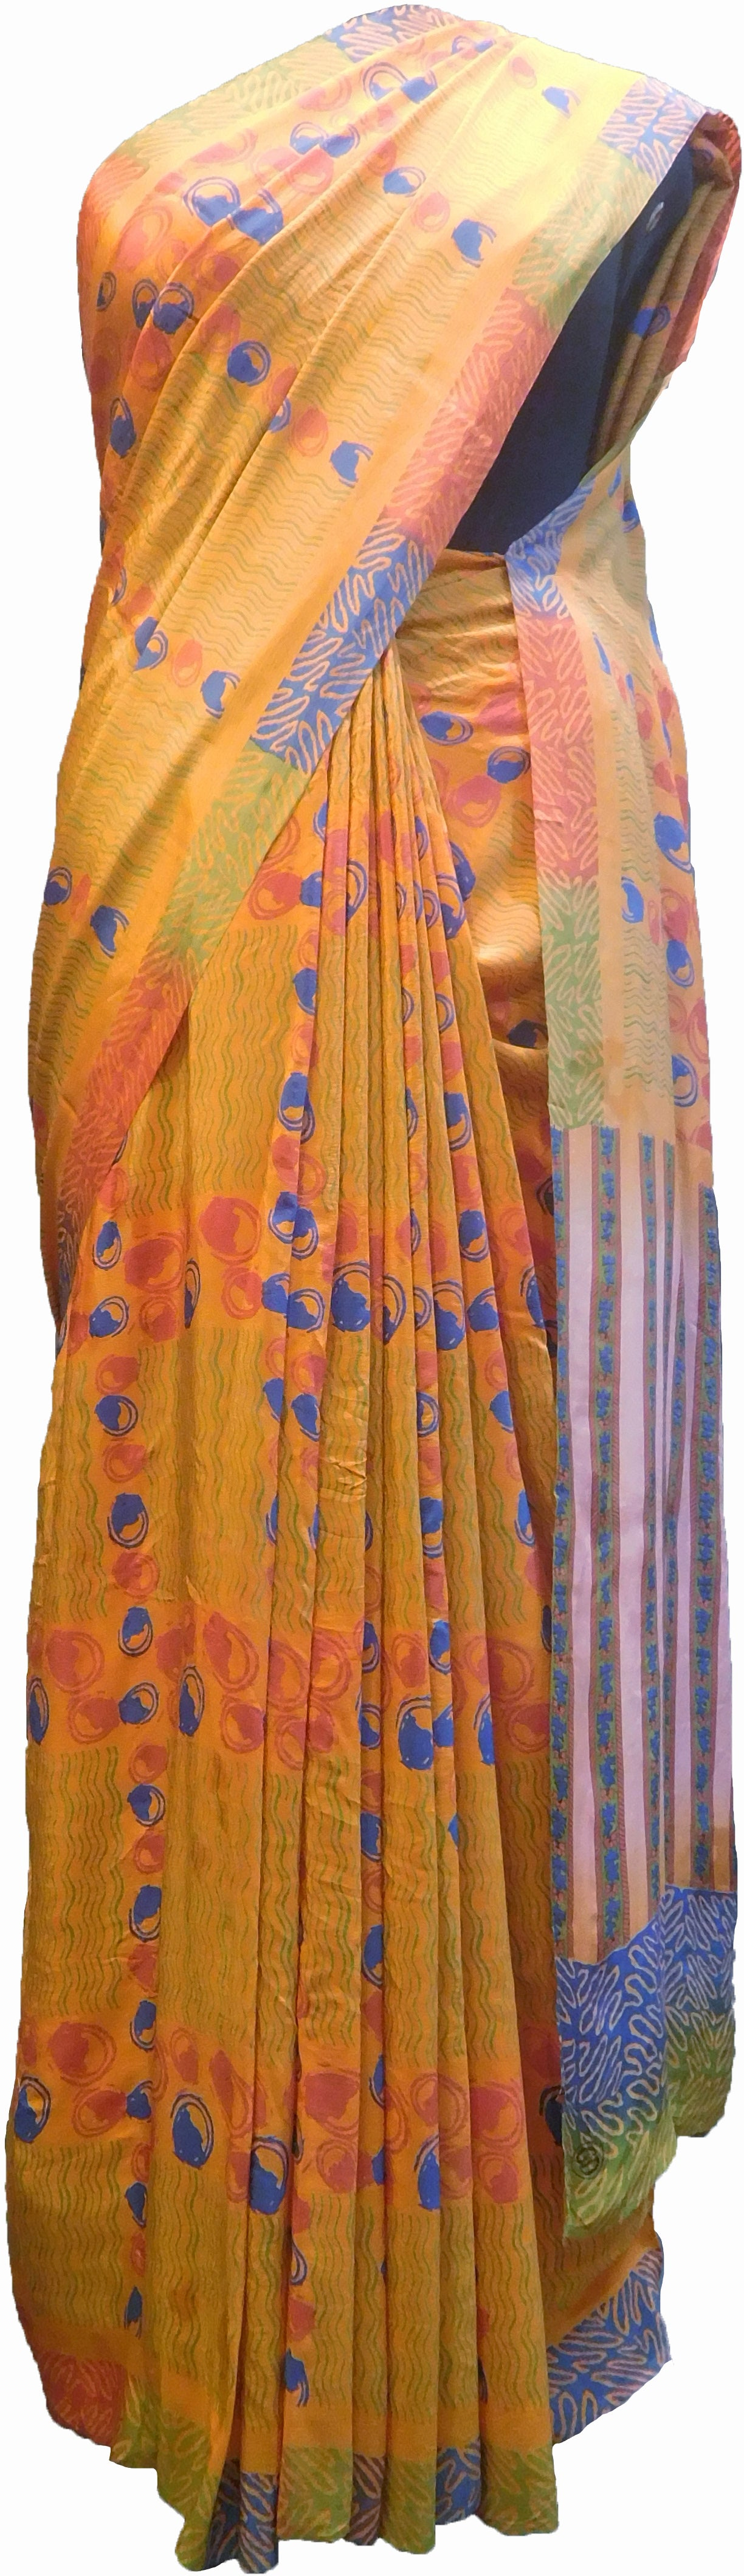 SMSAREE Multi Color Designer Wedding Partywear Pure Crepe Hand Brush Print Hand Embroidery Work Bridal Saree Sari With Blouse Piece RP346